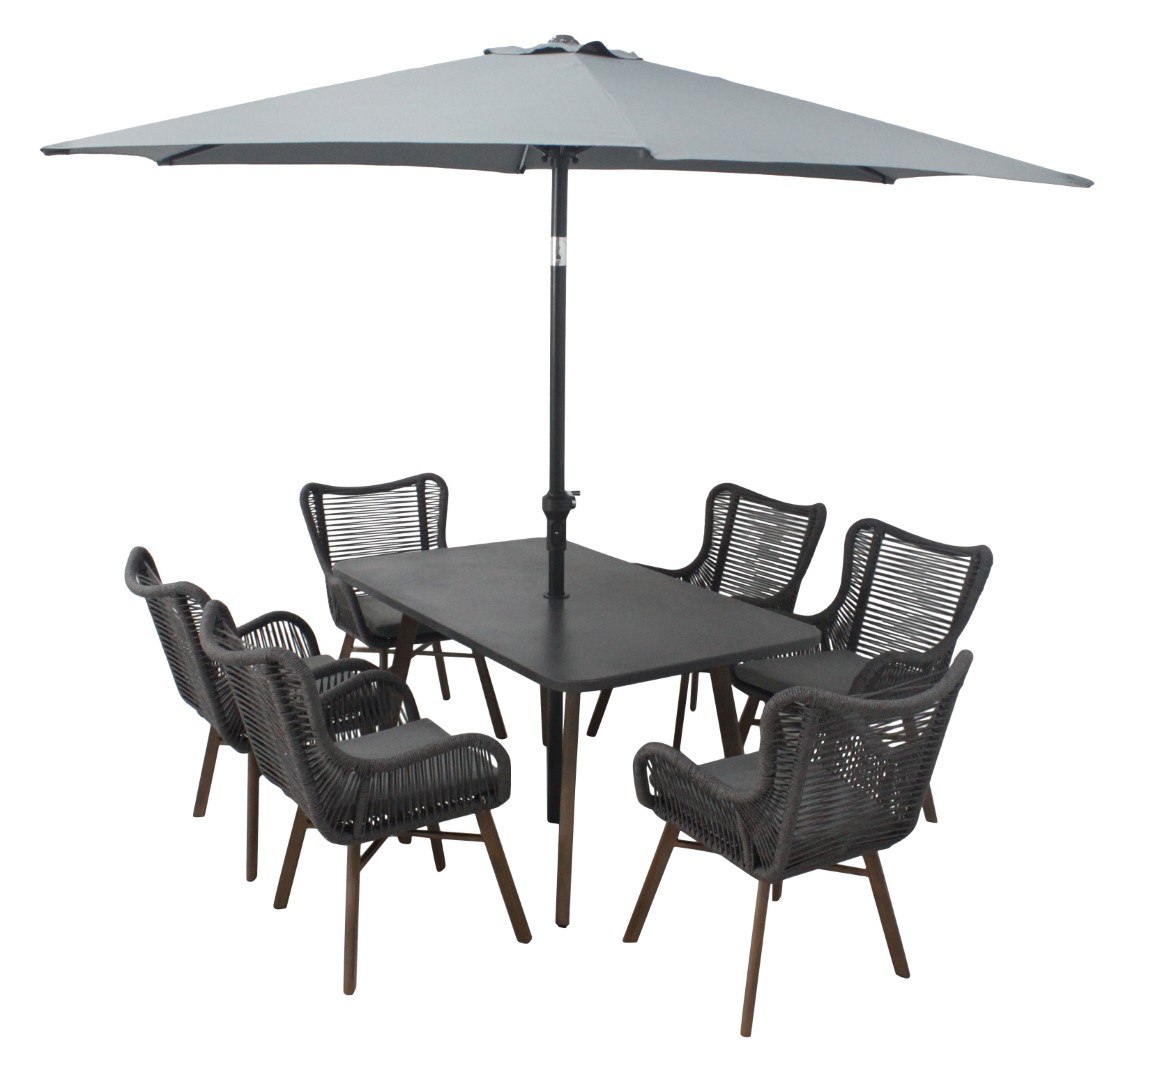 Leisuregrow Santa Fe Grey Aluminium 6 Seater Dining Set with 300cm Stainless Steel Parasol and Base